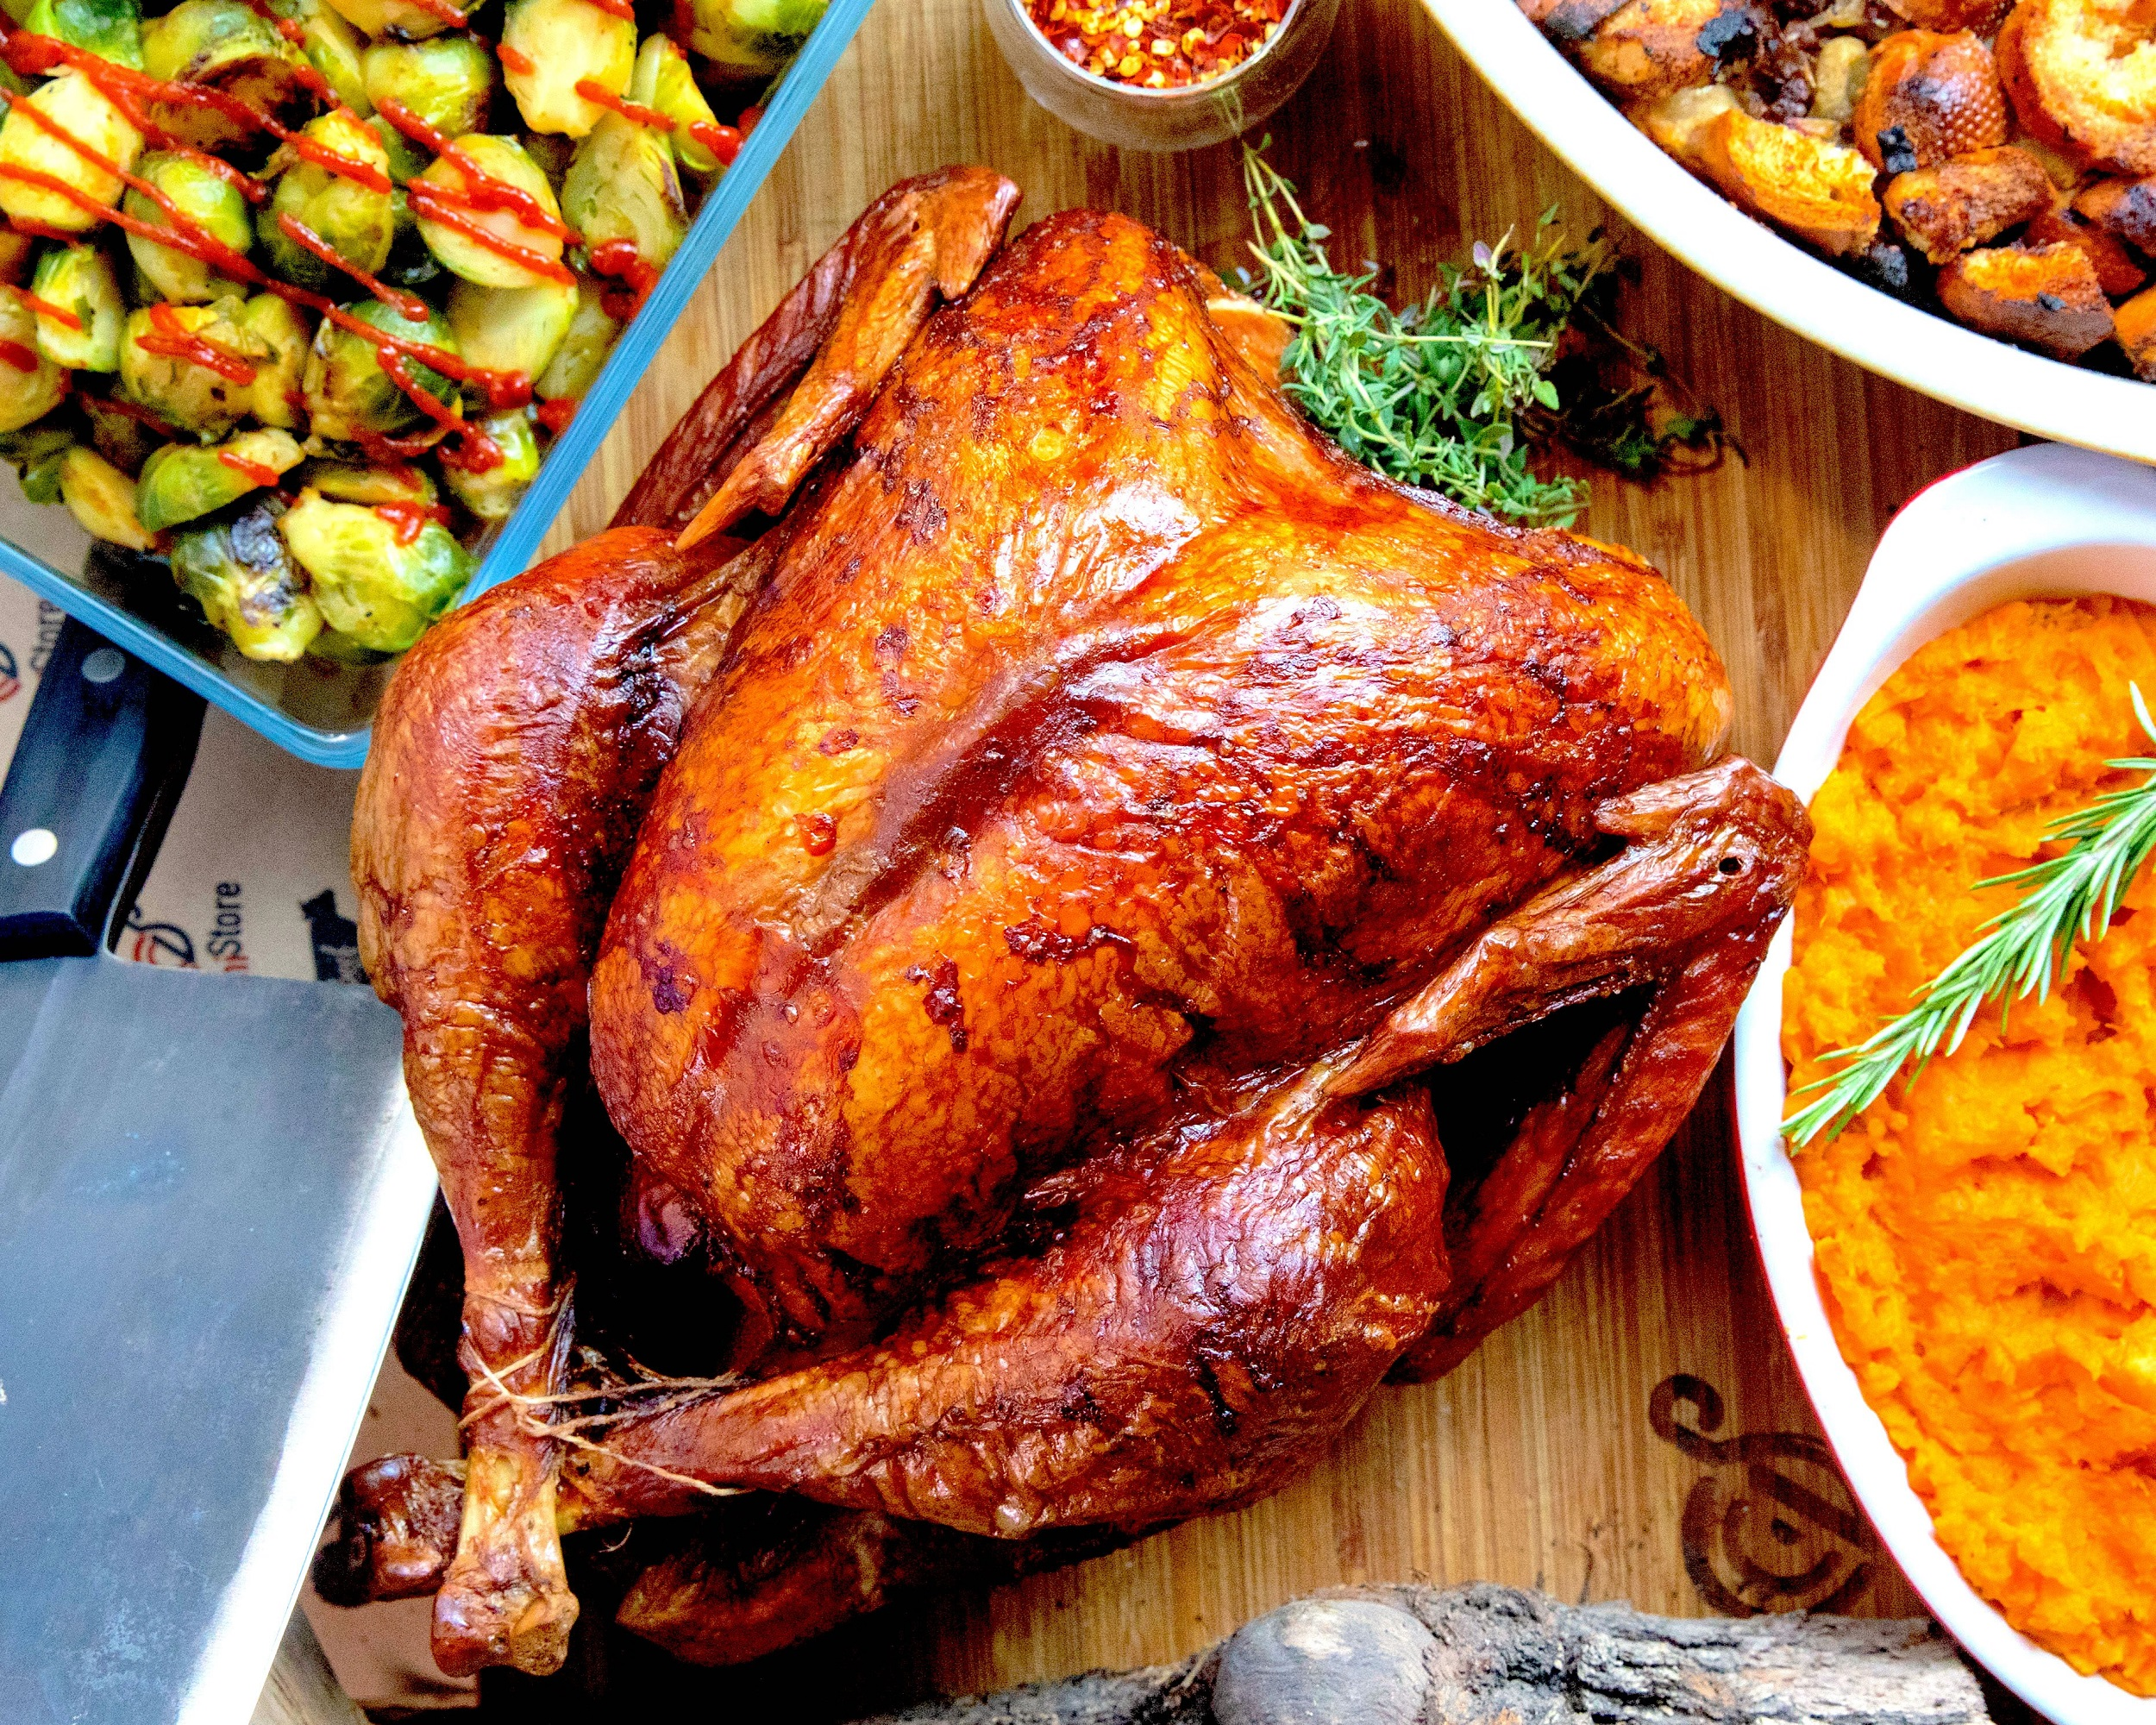 Where We're Buying Our Festive Turkey in Dubai